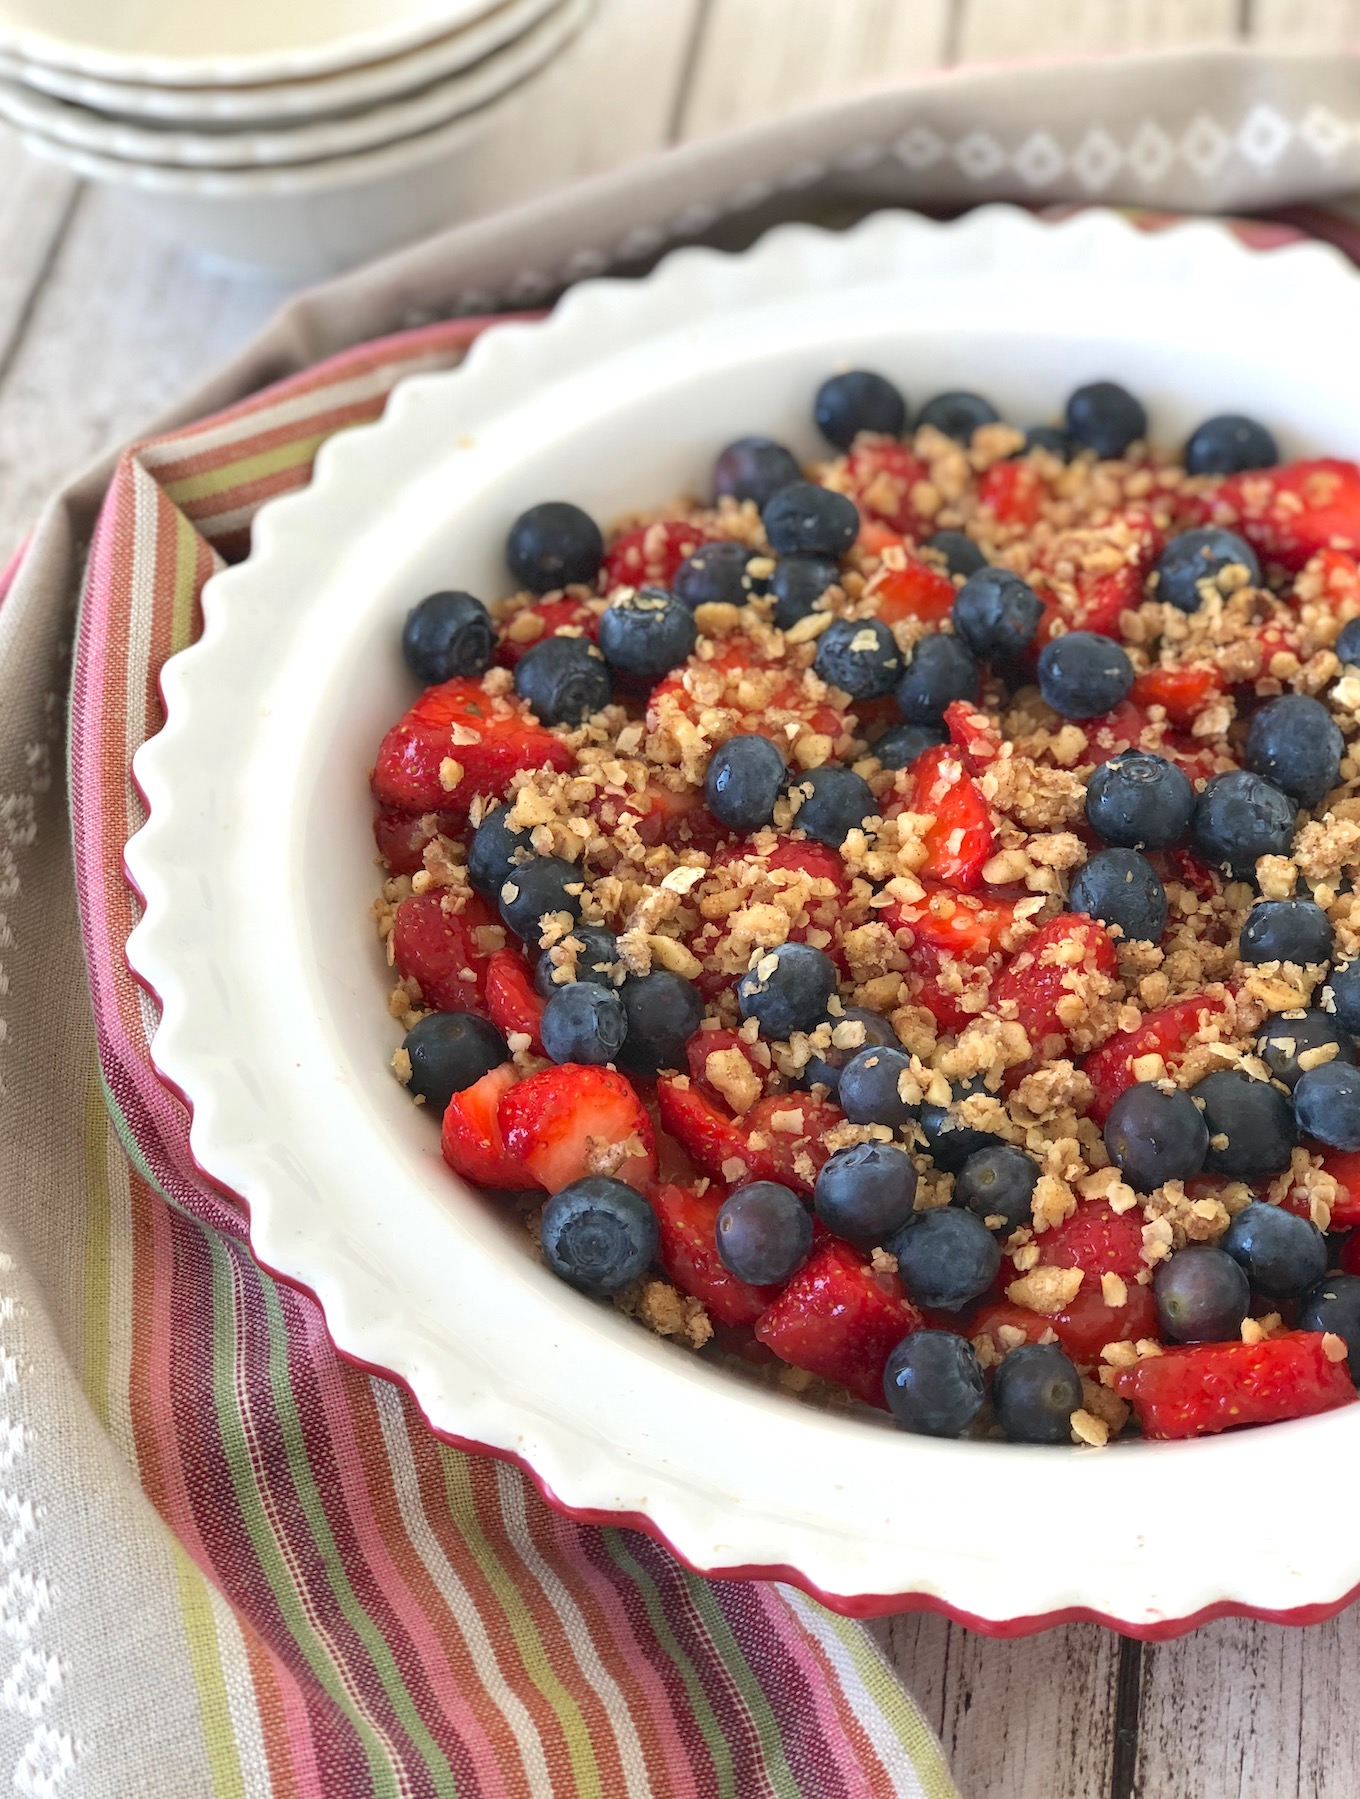 Strawberry blueberry crisp